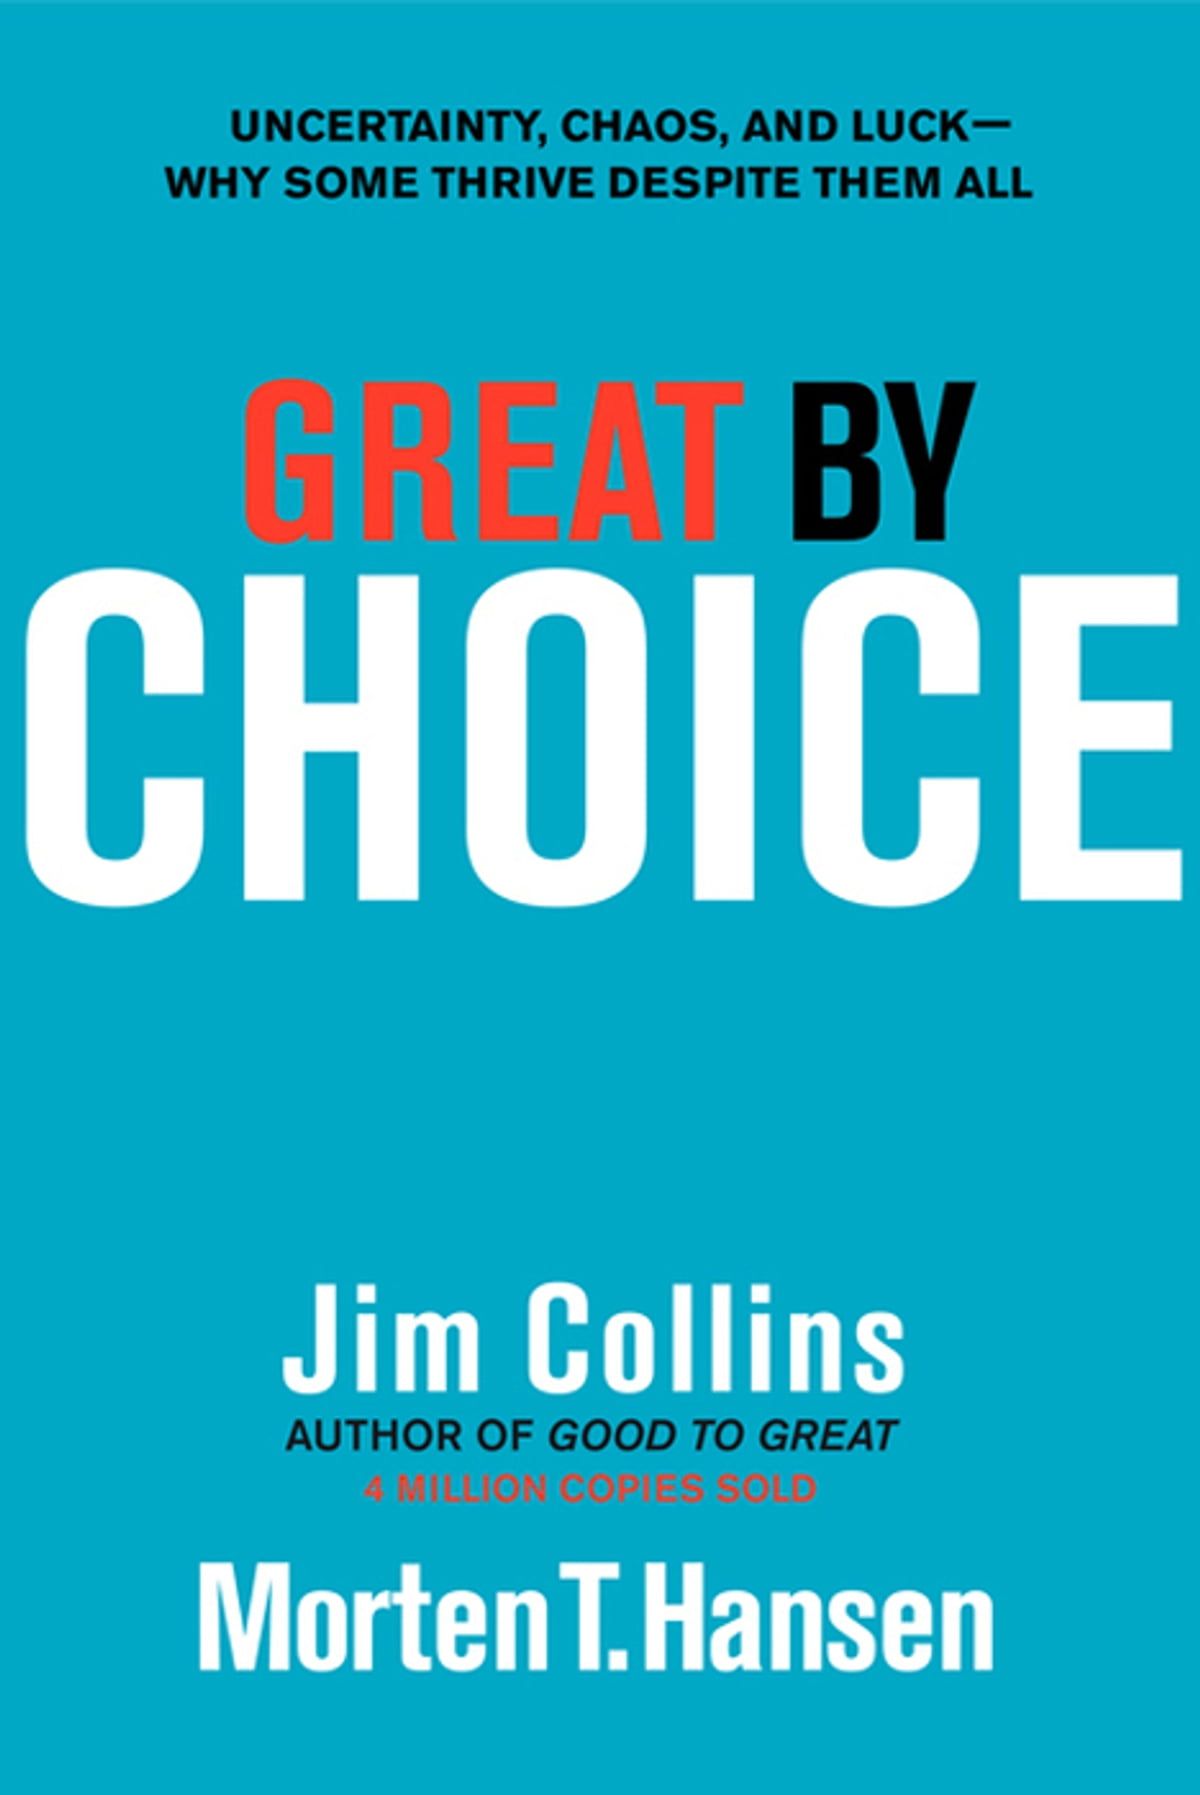 Great By Choice  Uncertainty, Chaos, And Luckwhy Some Thrive Despite